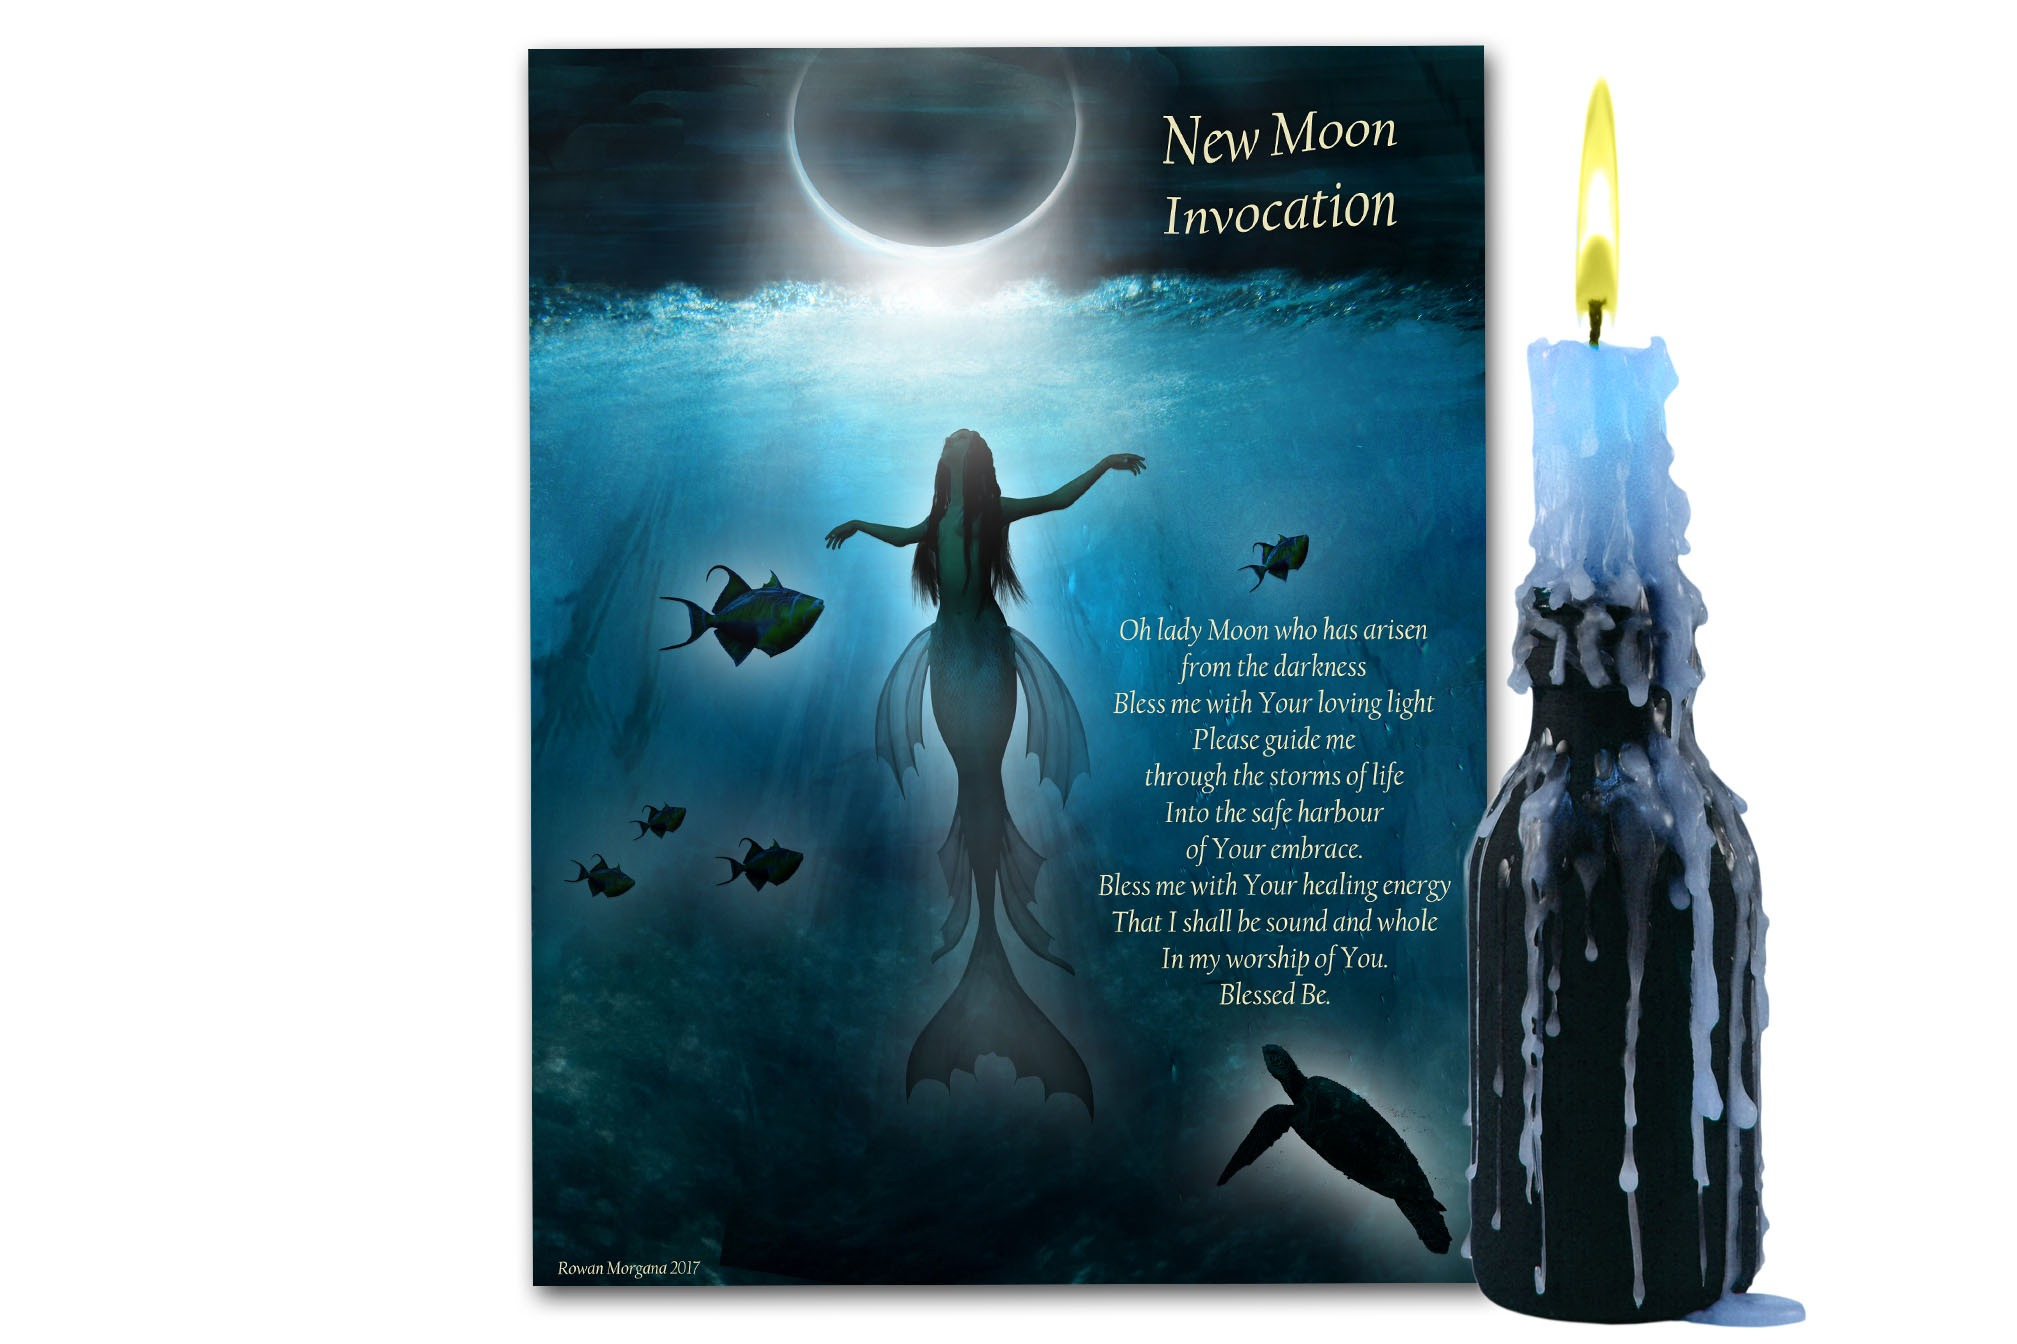 NEW MOON INVOCATION